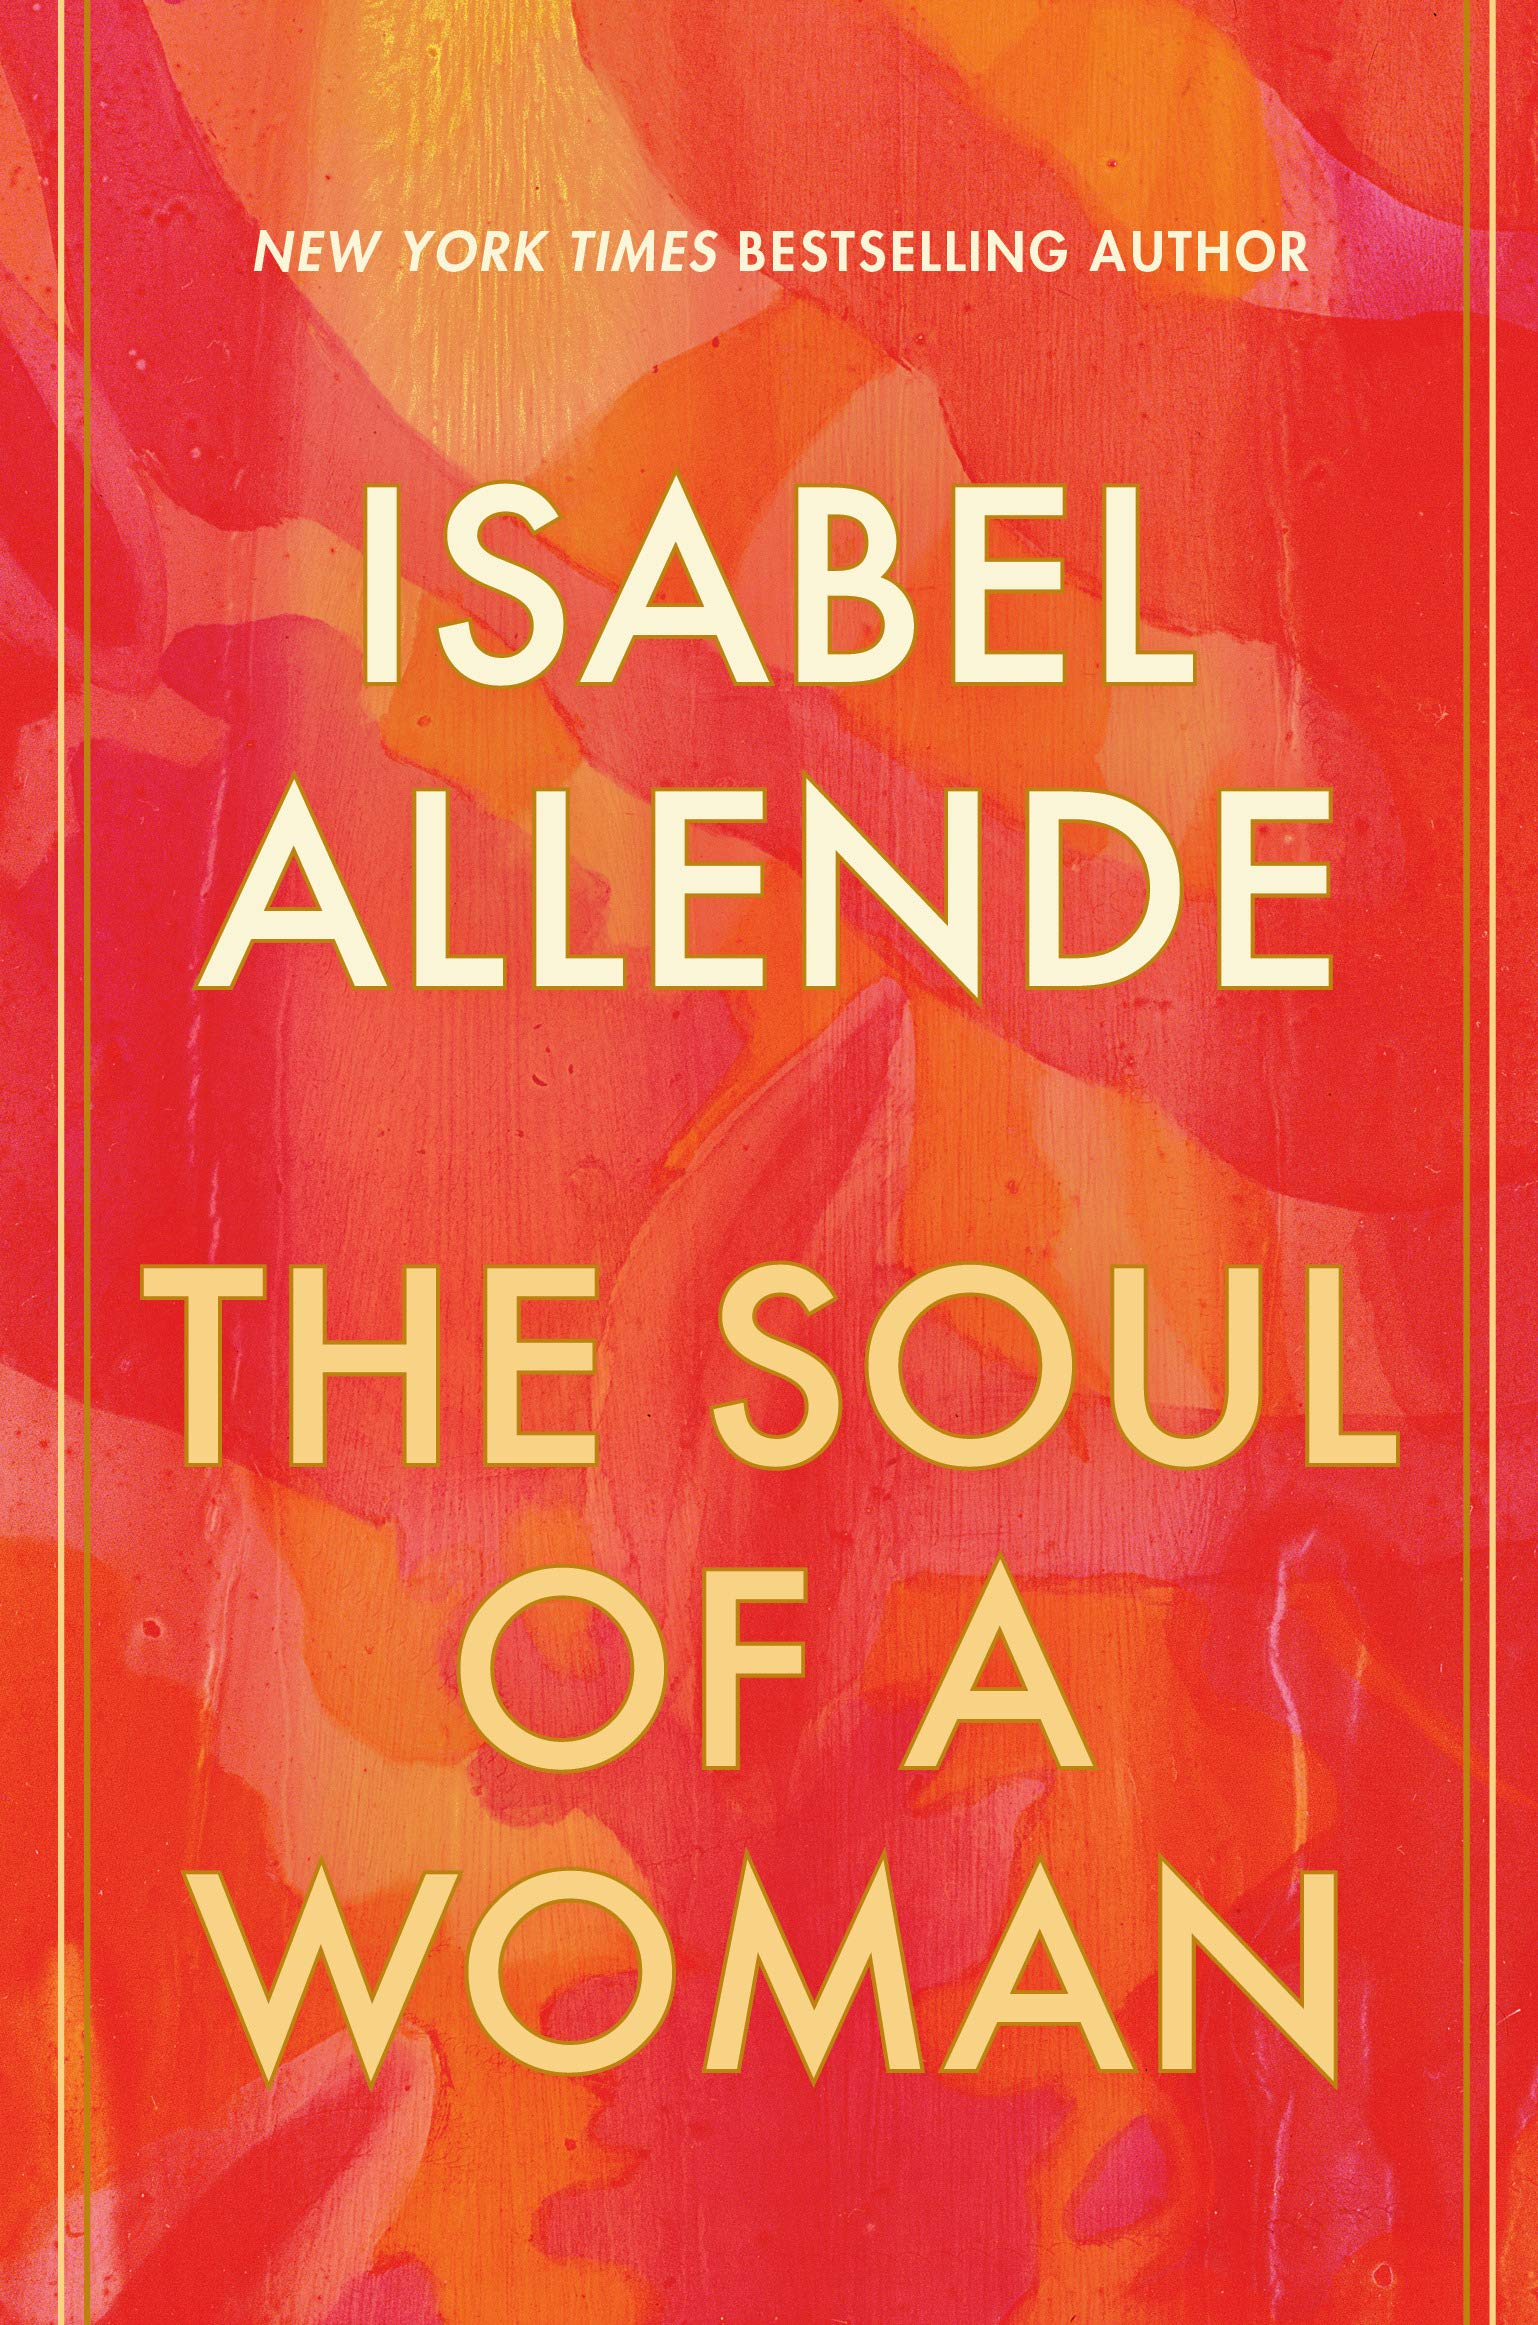 Amazon.com: The Soul of a Woman (9780593355626): Allende, Isabel: Books